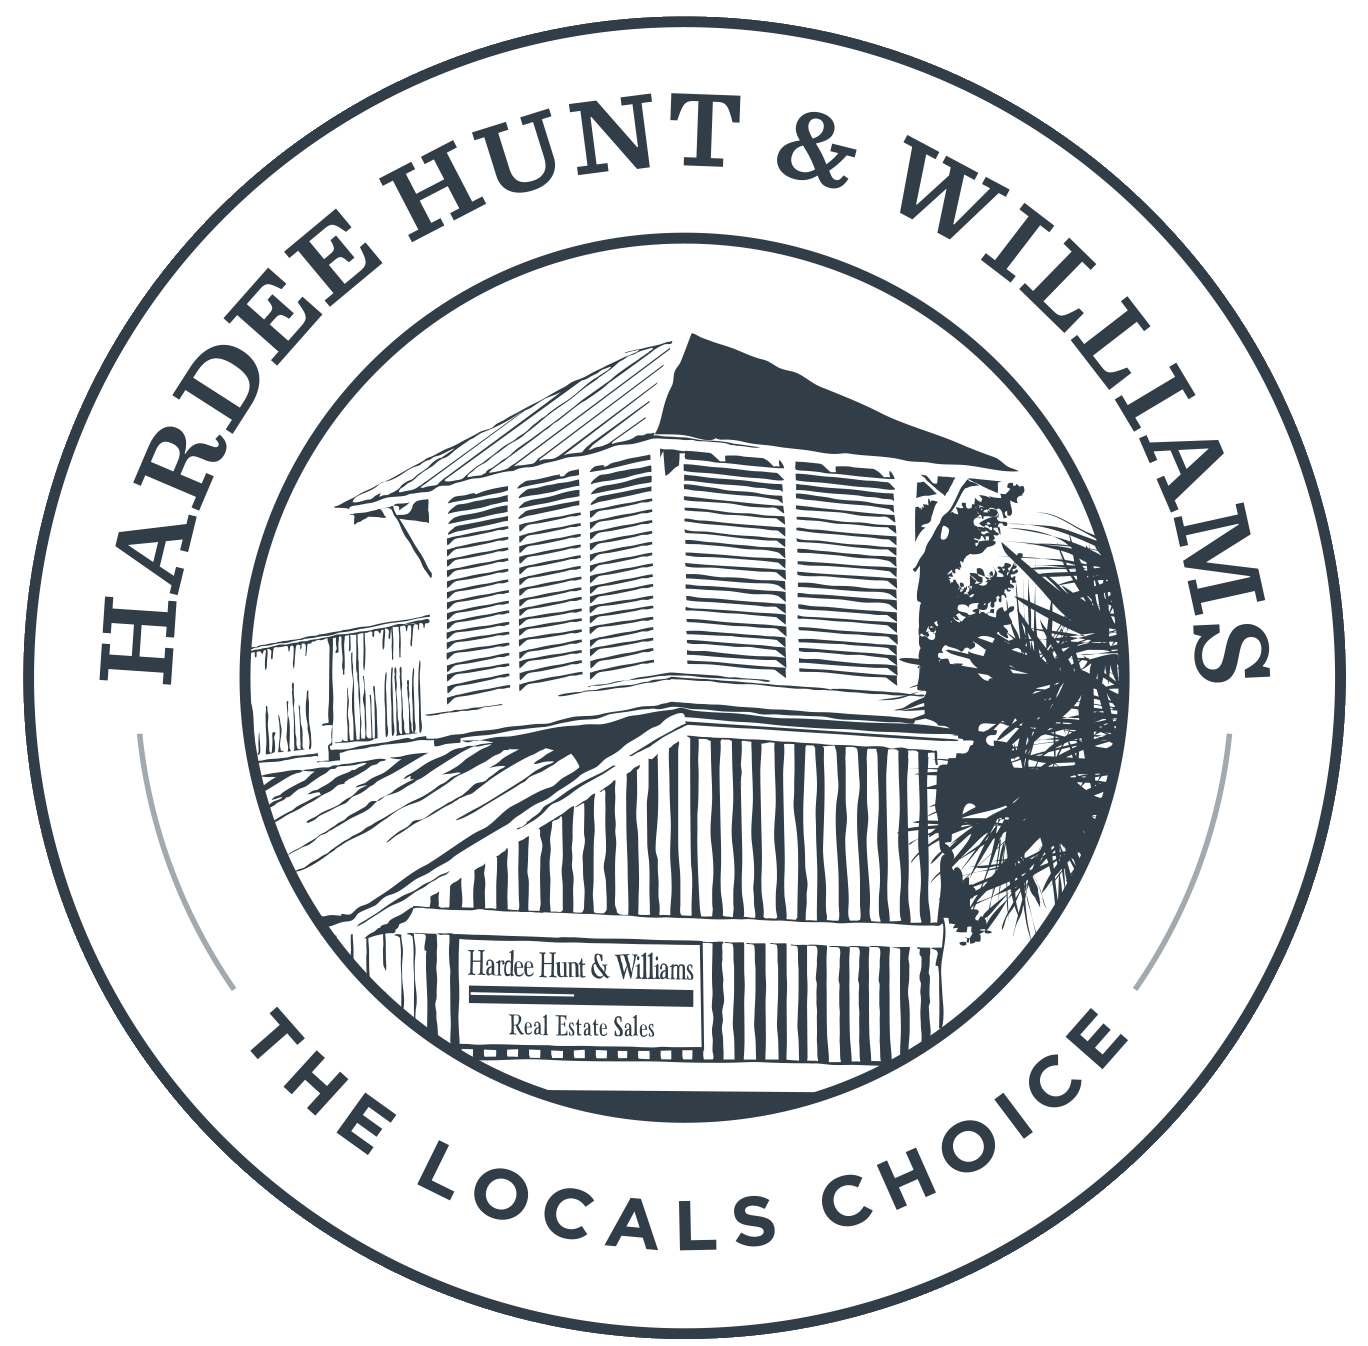 Hardee Hunt & Williams